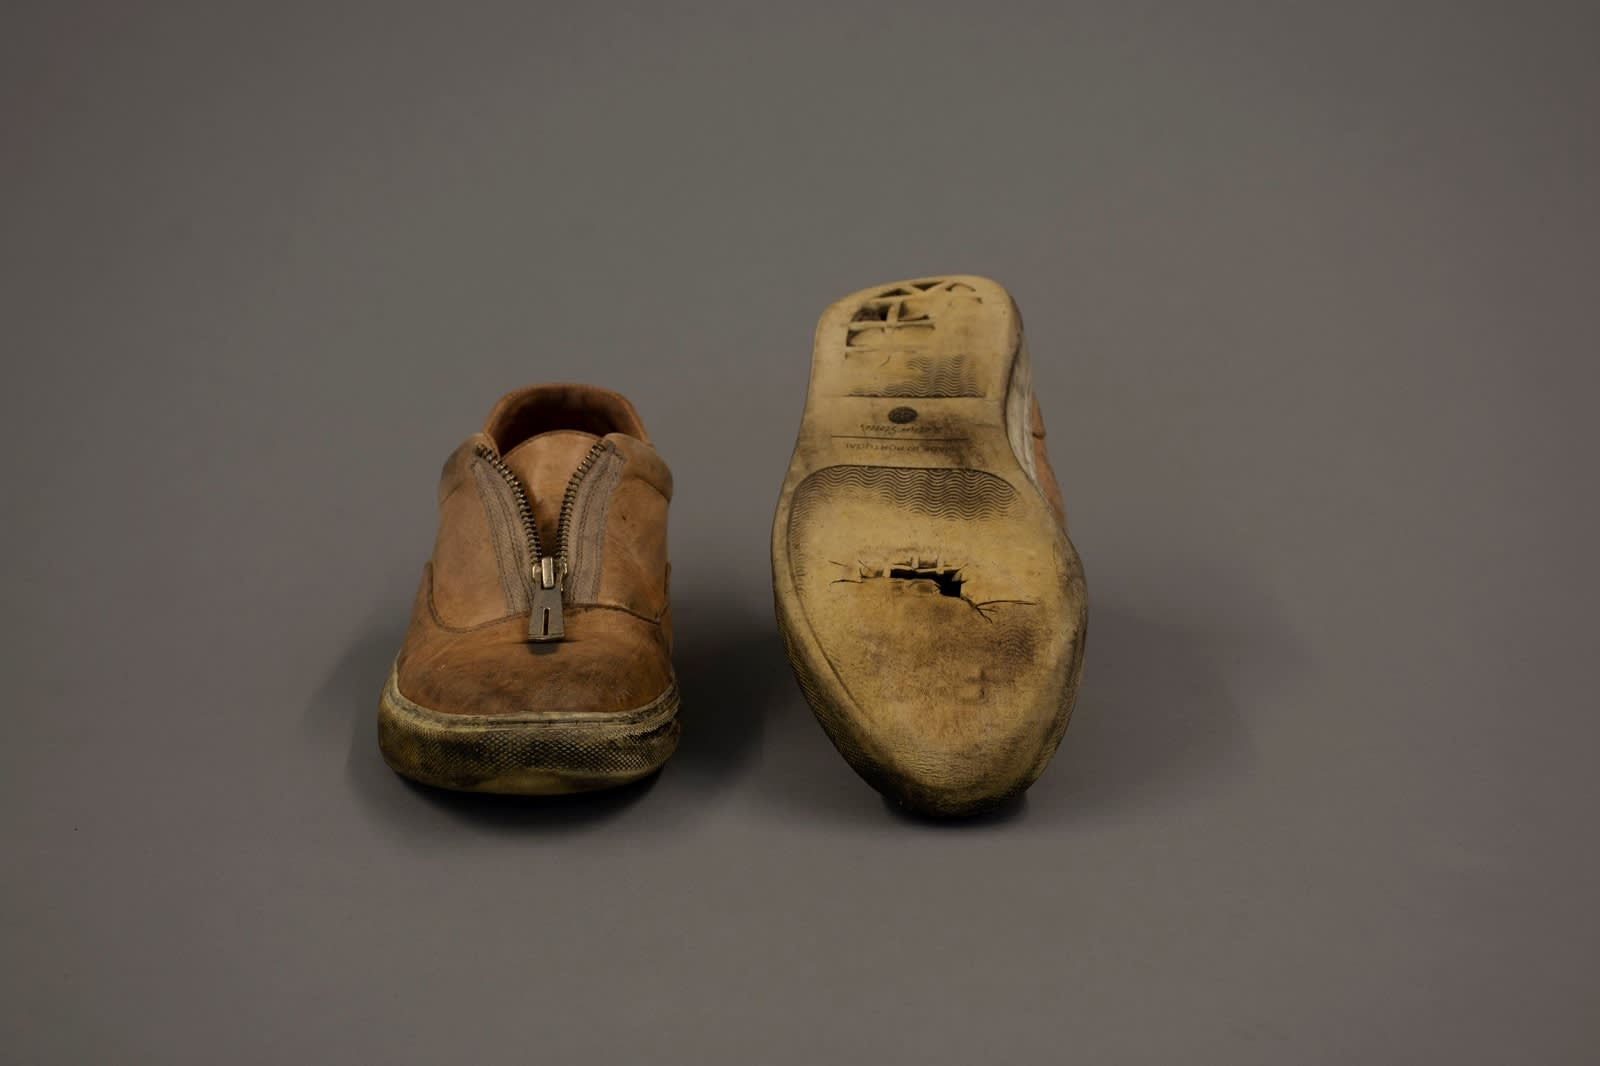 """Alexandria Ocasio-Cortez's campaign shoes are on loan to the Cornell Costume & Textile Collection for the exhibition """"Women Empowered: Fashions from the Frontline."""""""